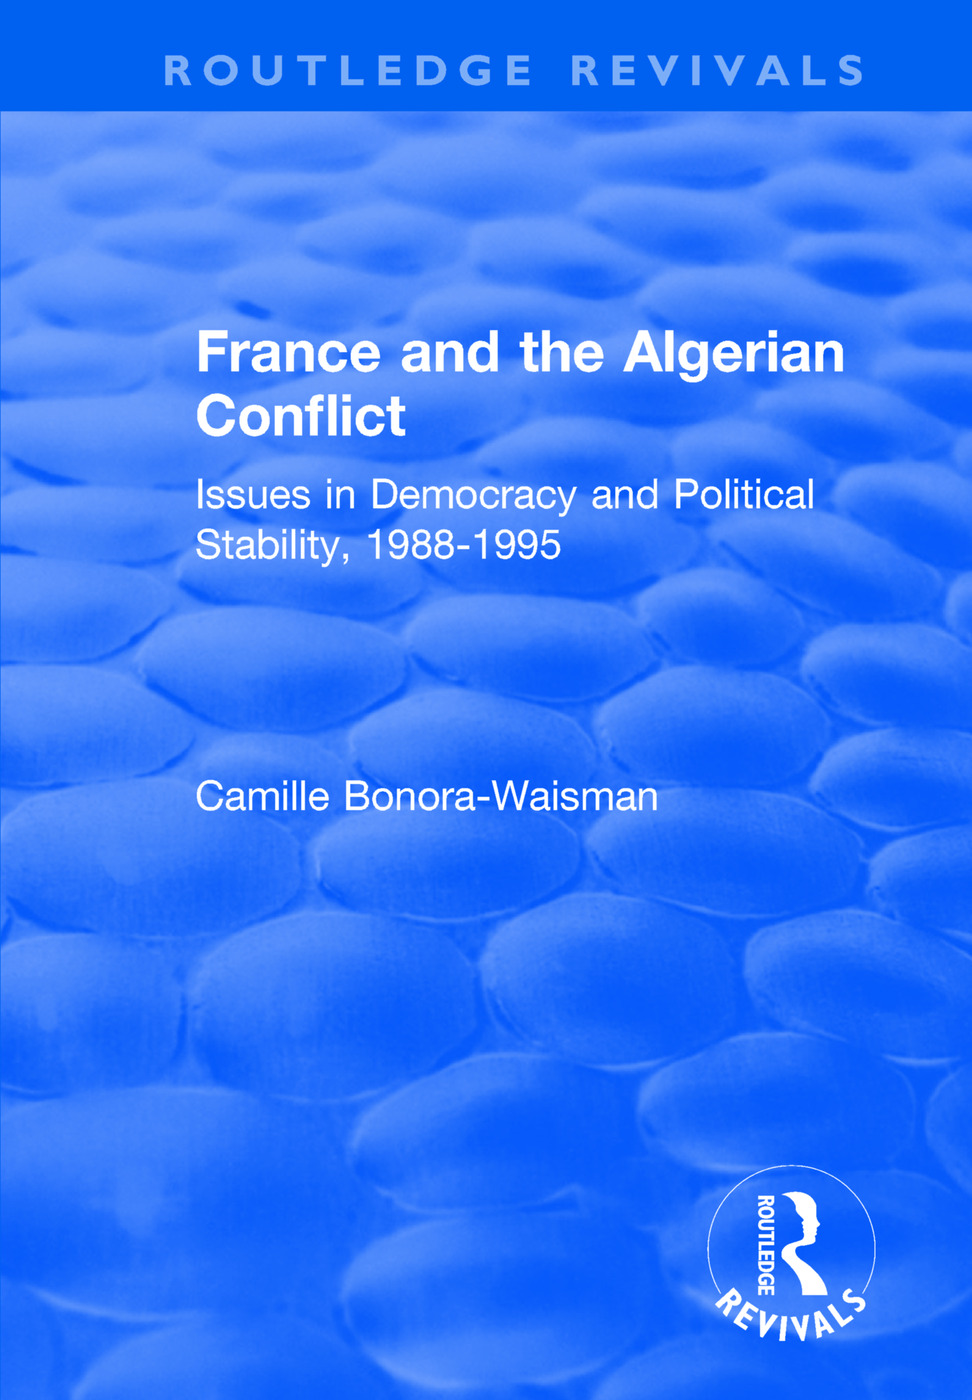 France and the Algerian Conflict